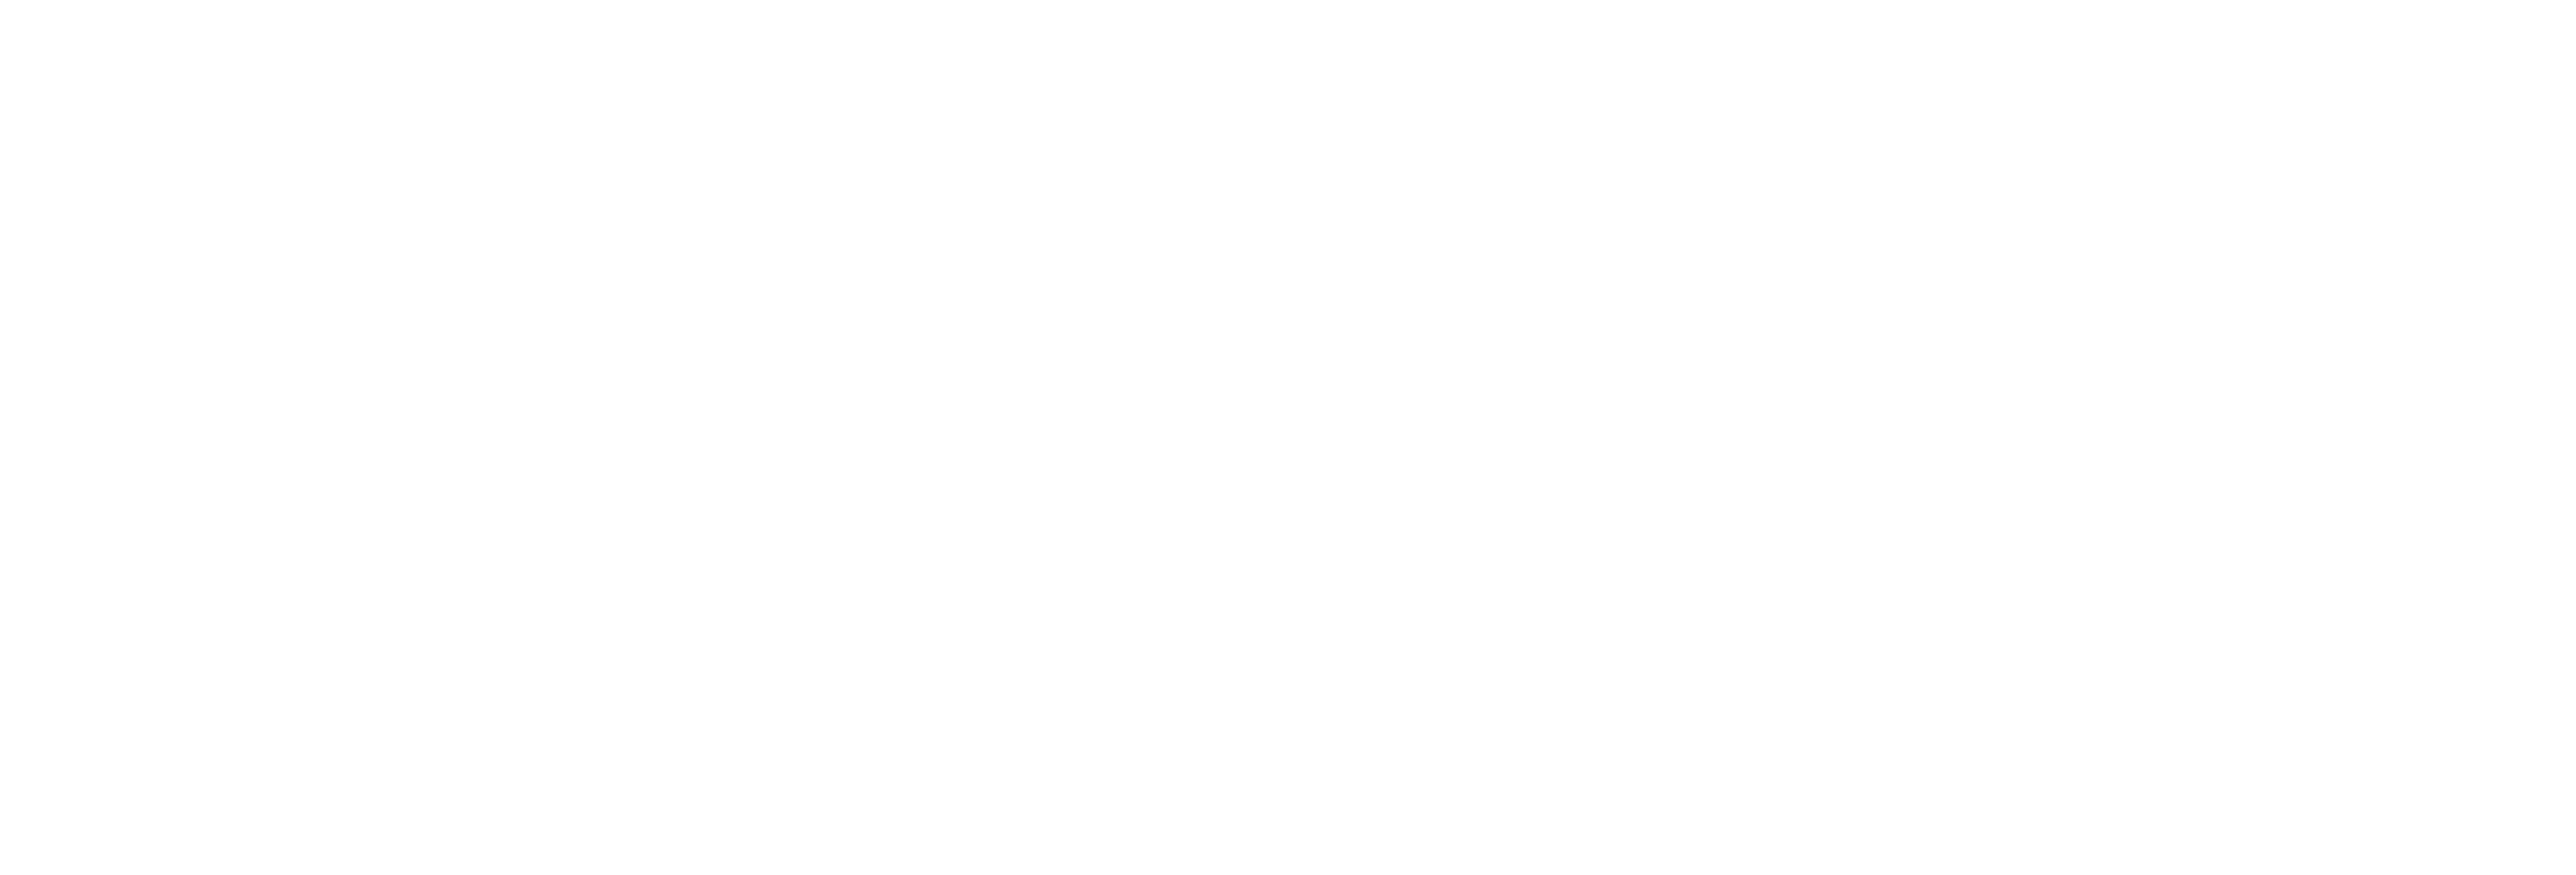 Ball State University Website